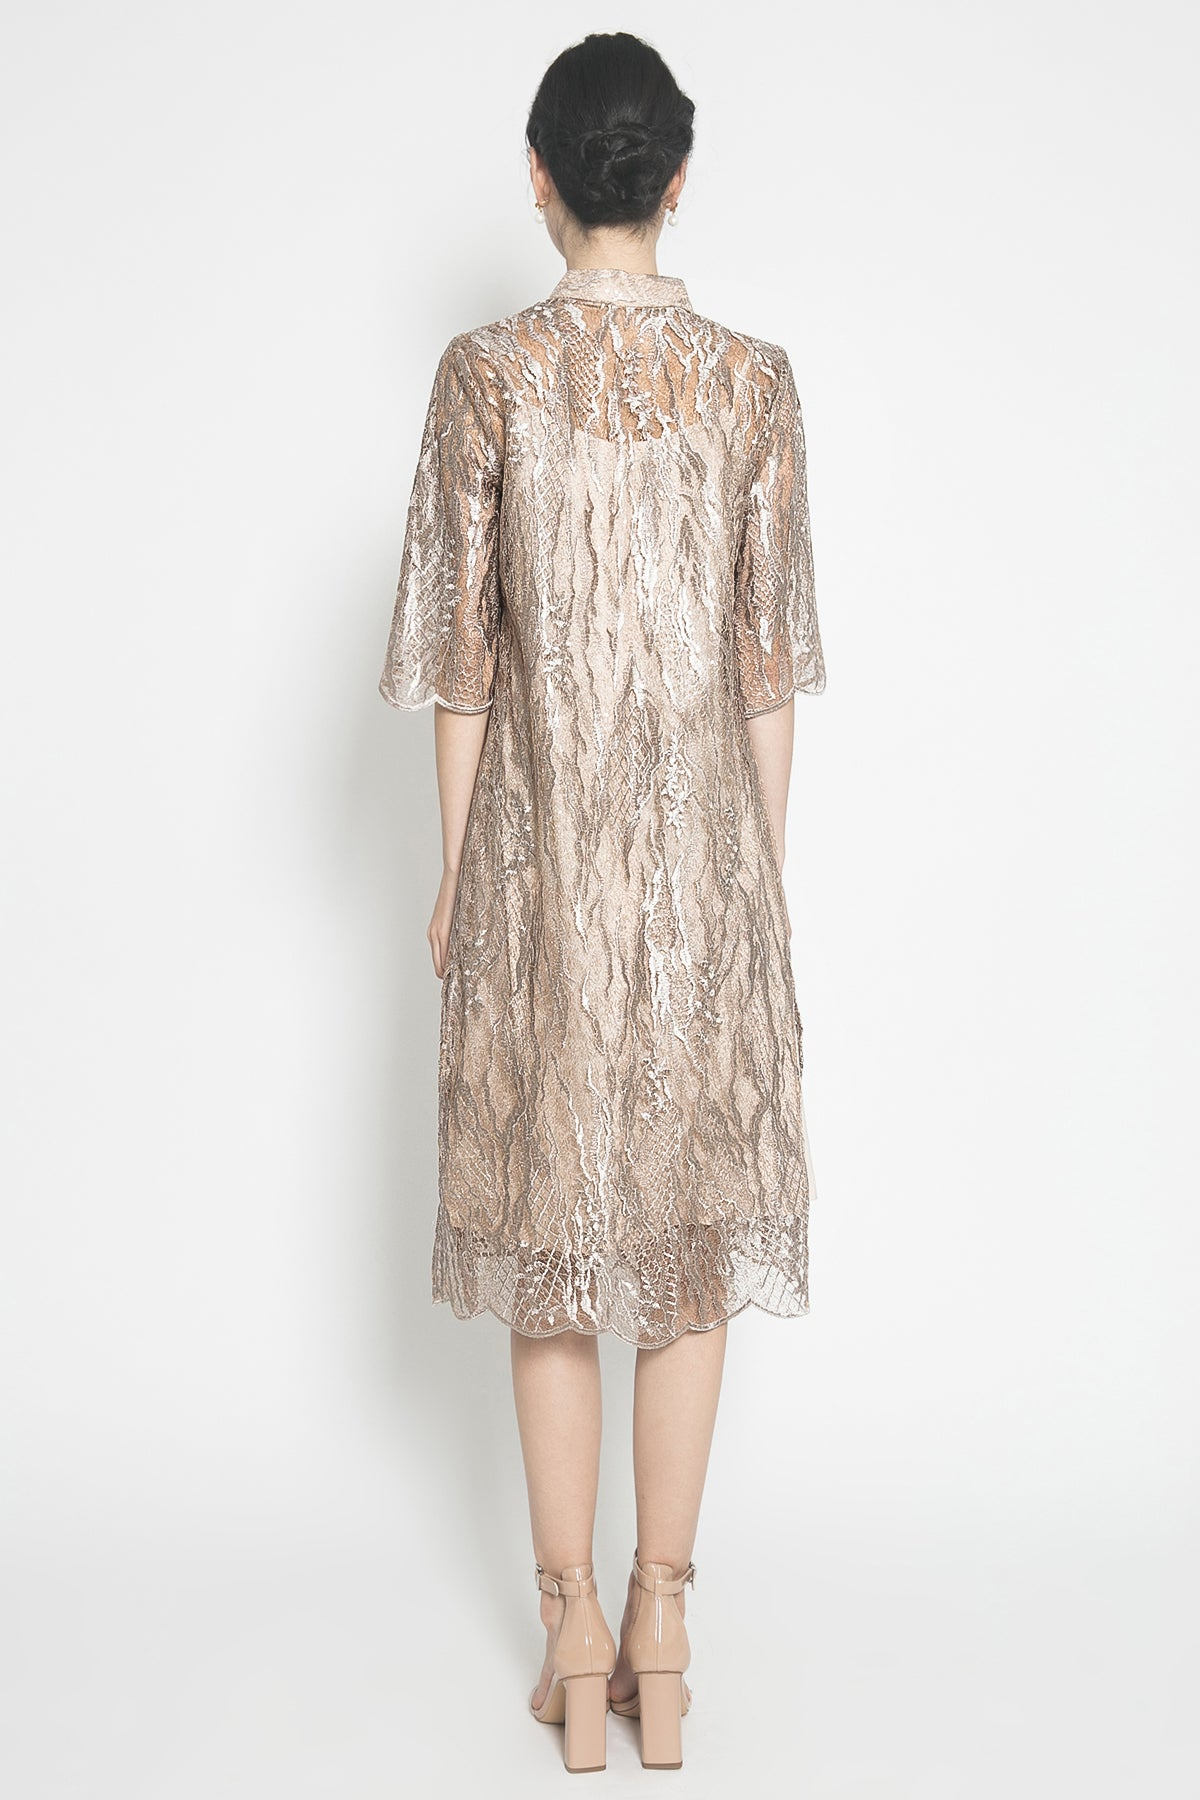 Amelie Dress in Gold